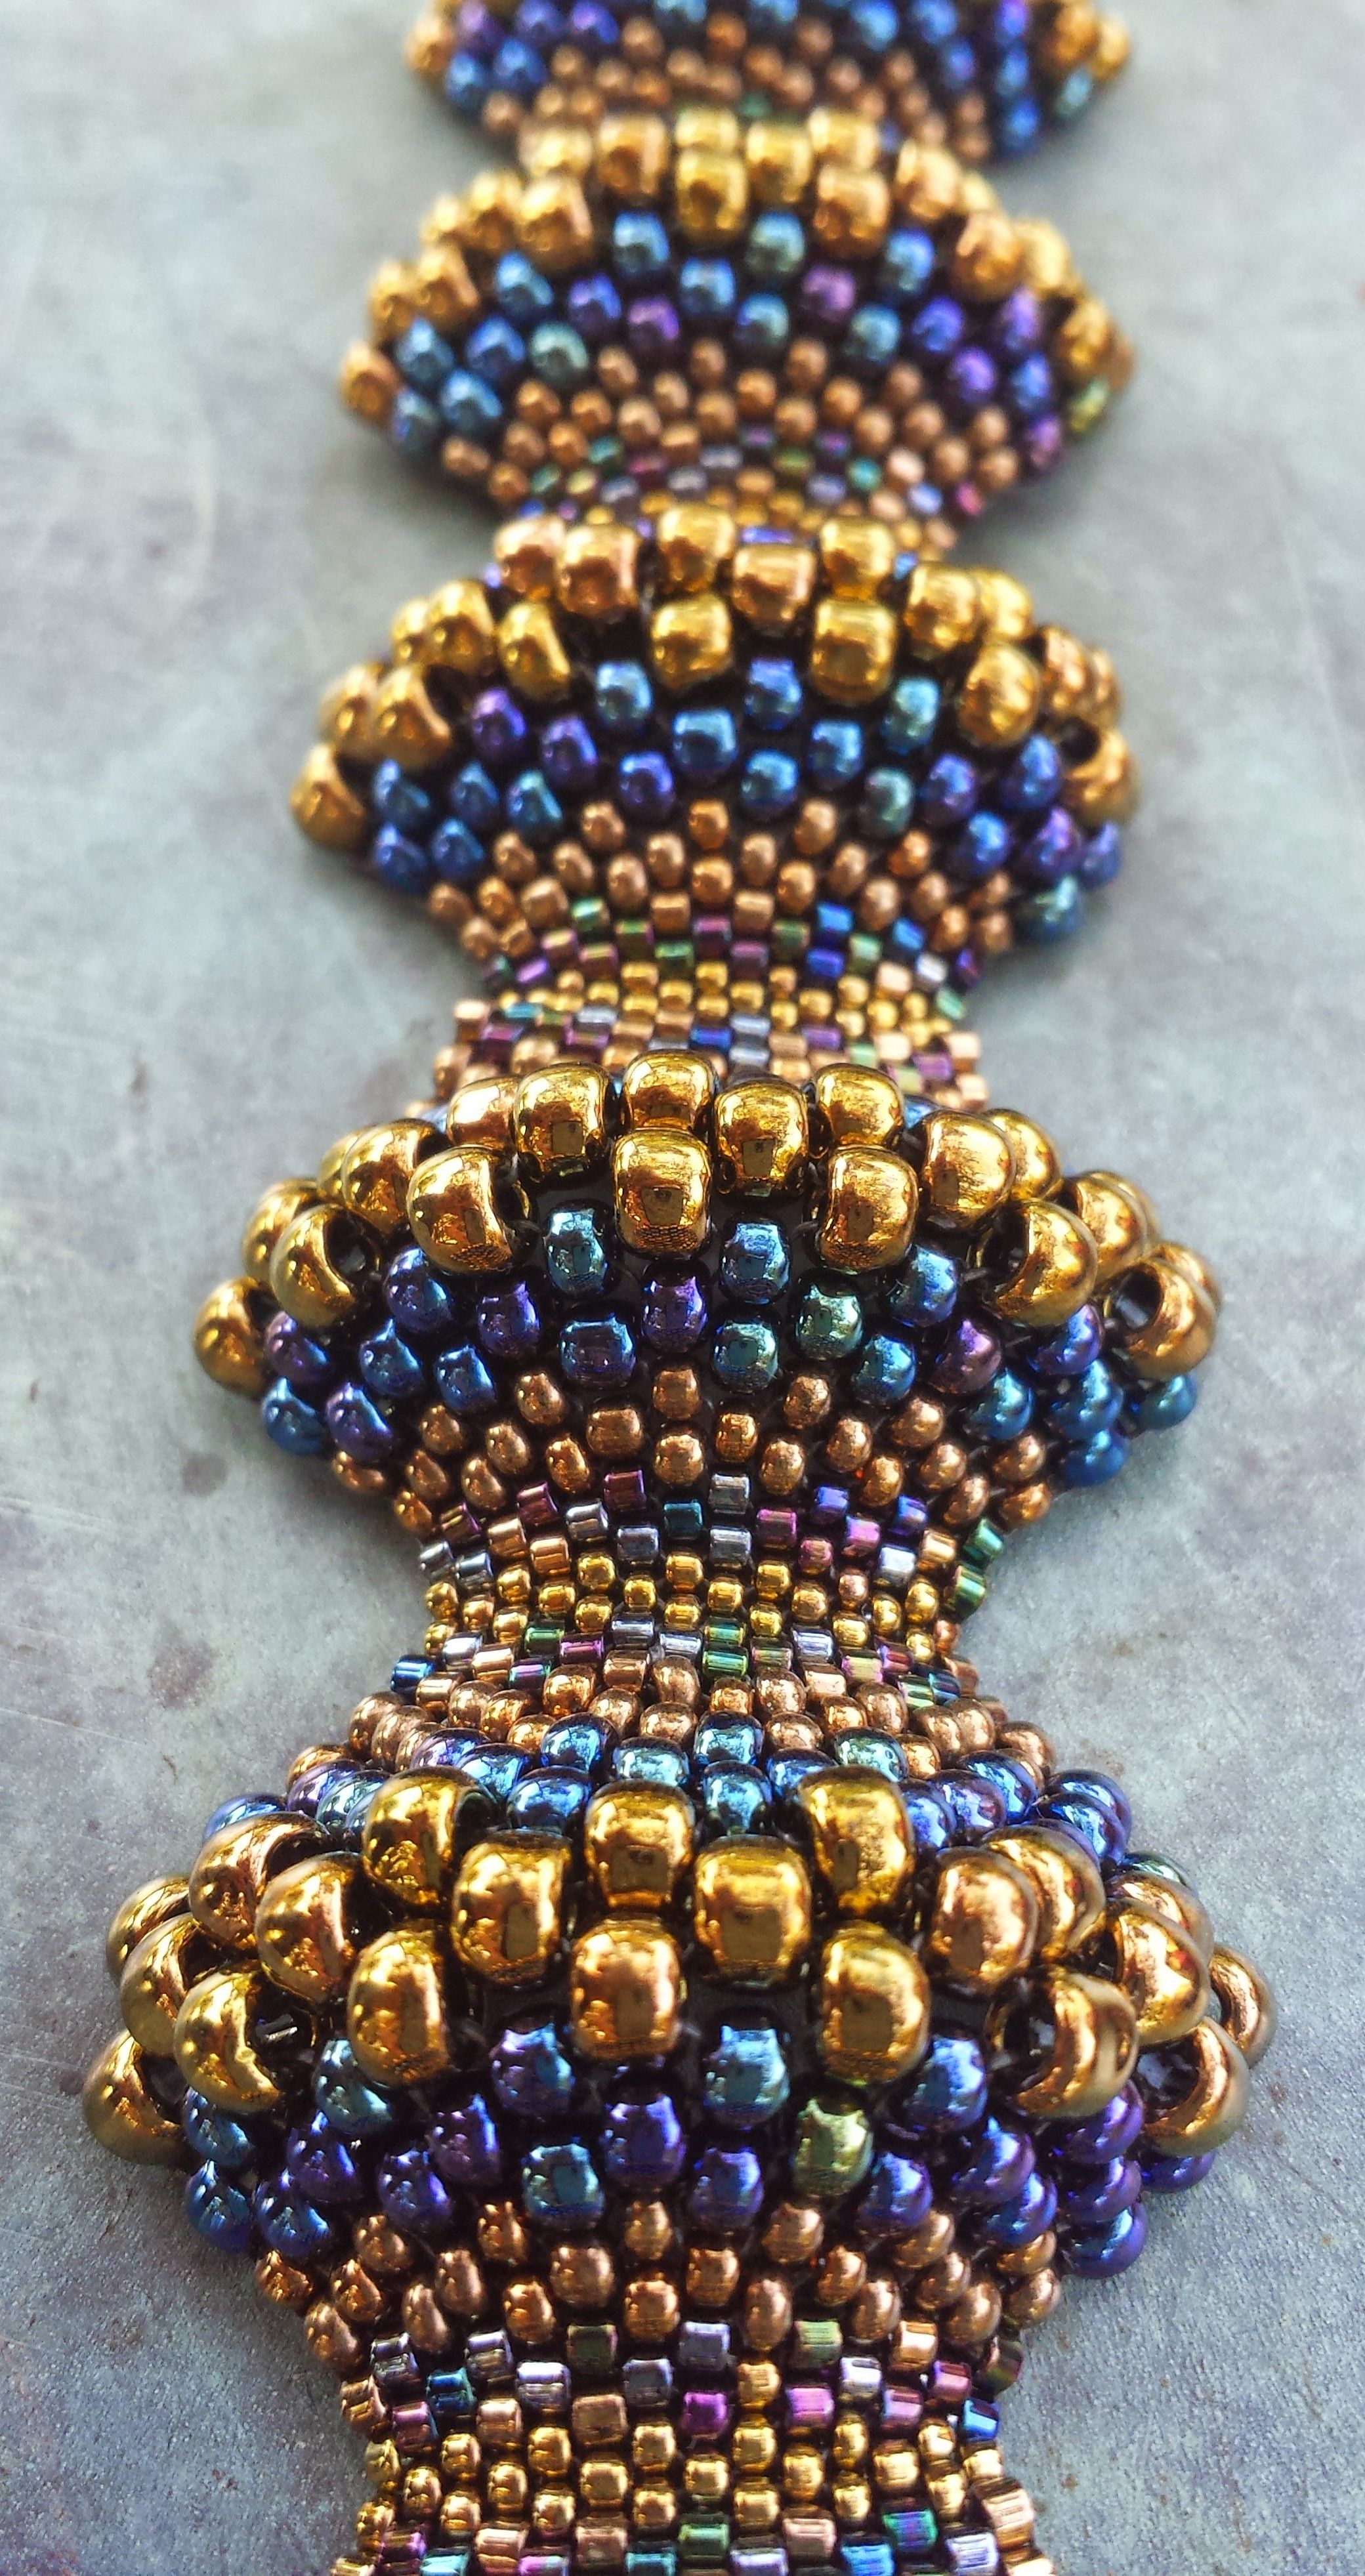 Beaded Bracelet Handwoven Gorgeous Miyuki Peyote Sched Covex Concave Blue And Gold Made With Love Thumbnail 1